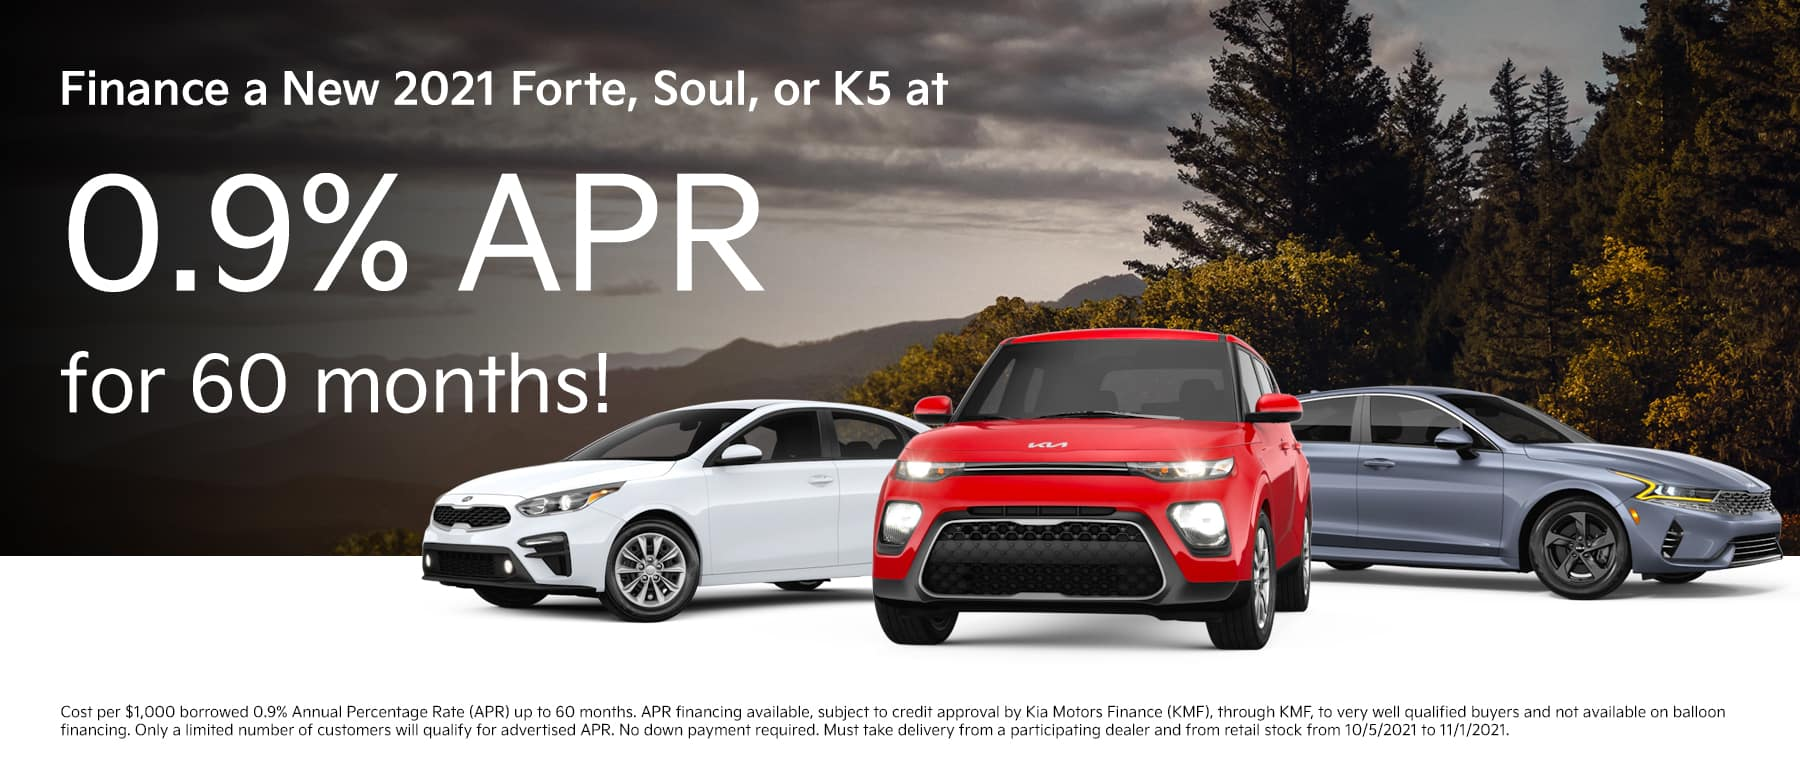 Finance a New 2021 Forte, Soul, or K5 at 0.9% APR for 60 Months!